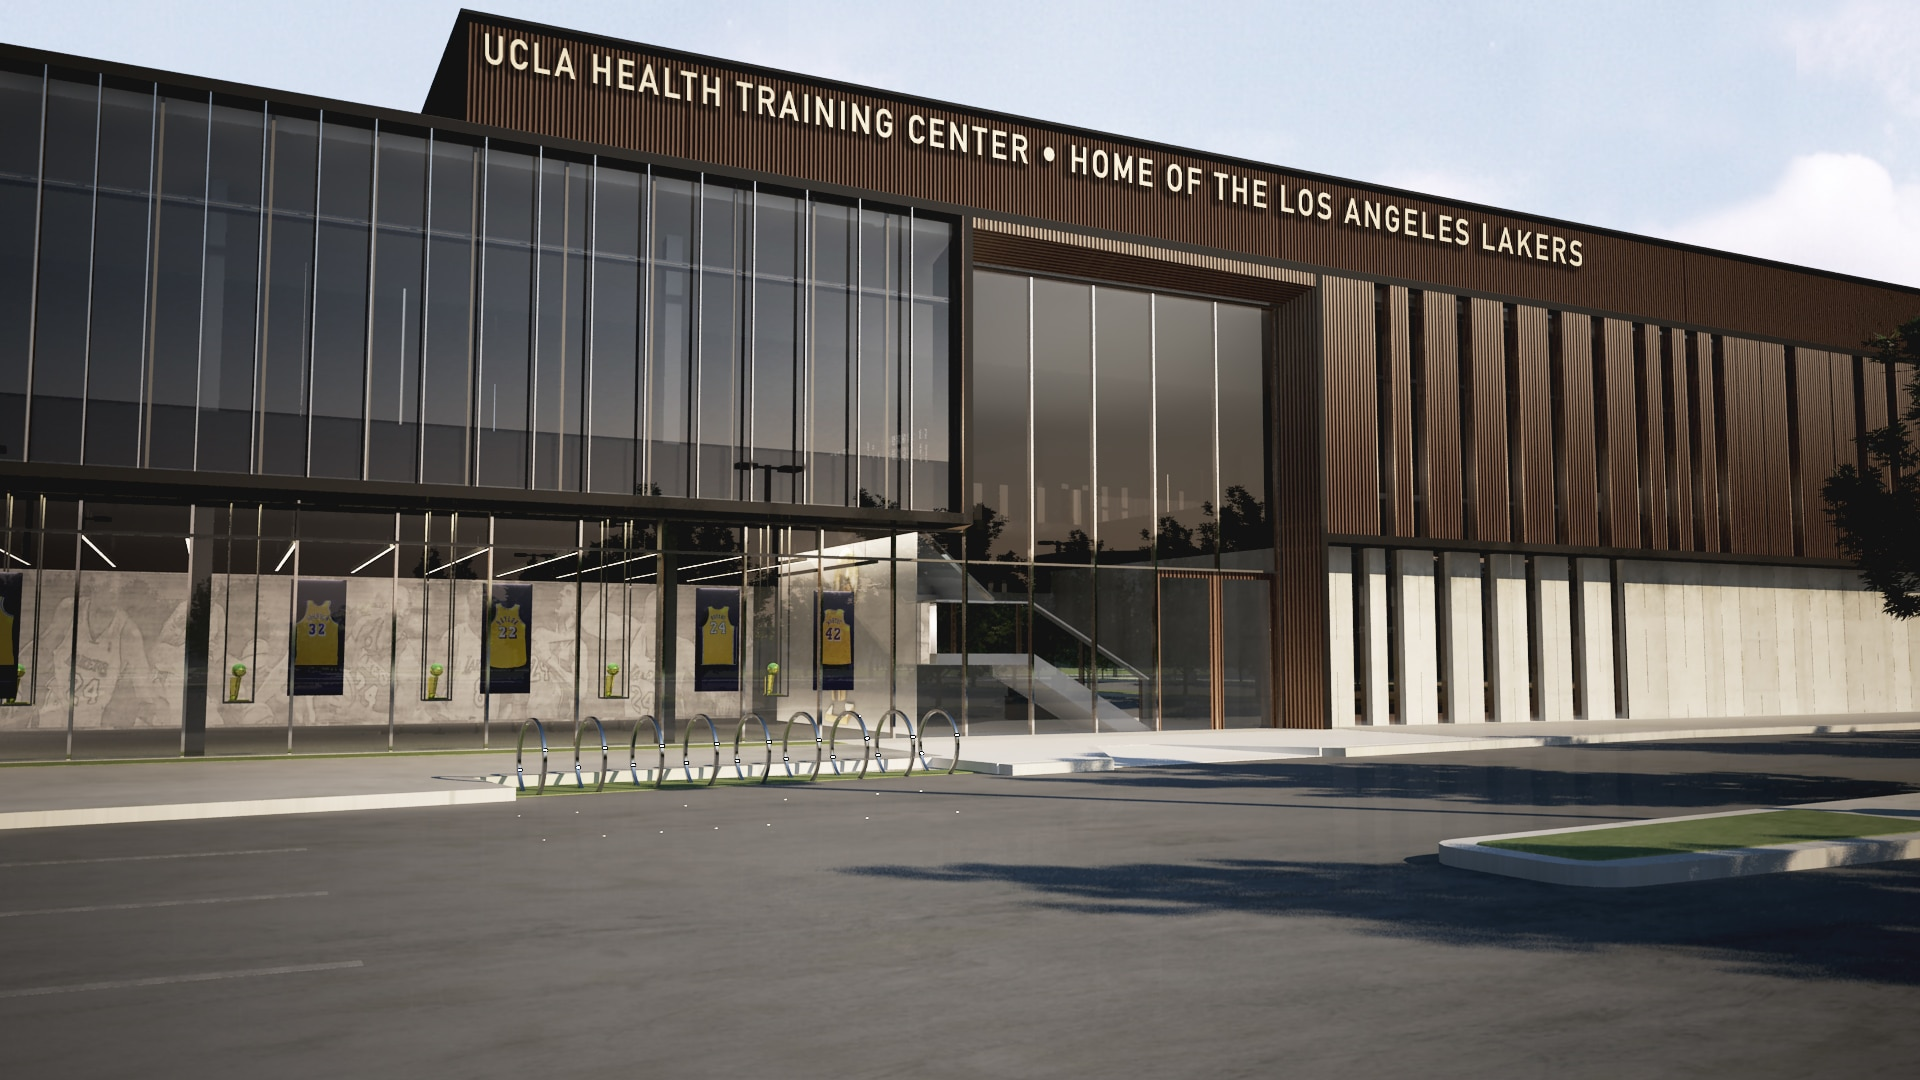 Exterior view of the UCLA Health Training Center